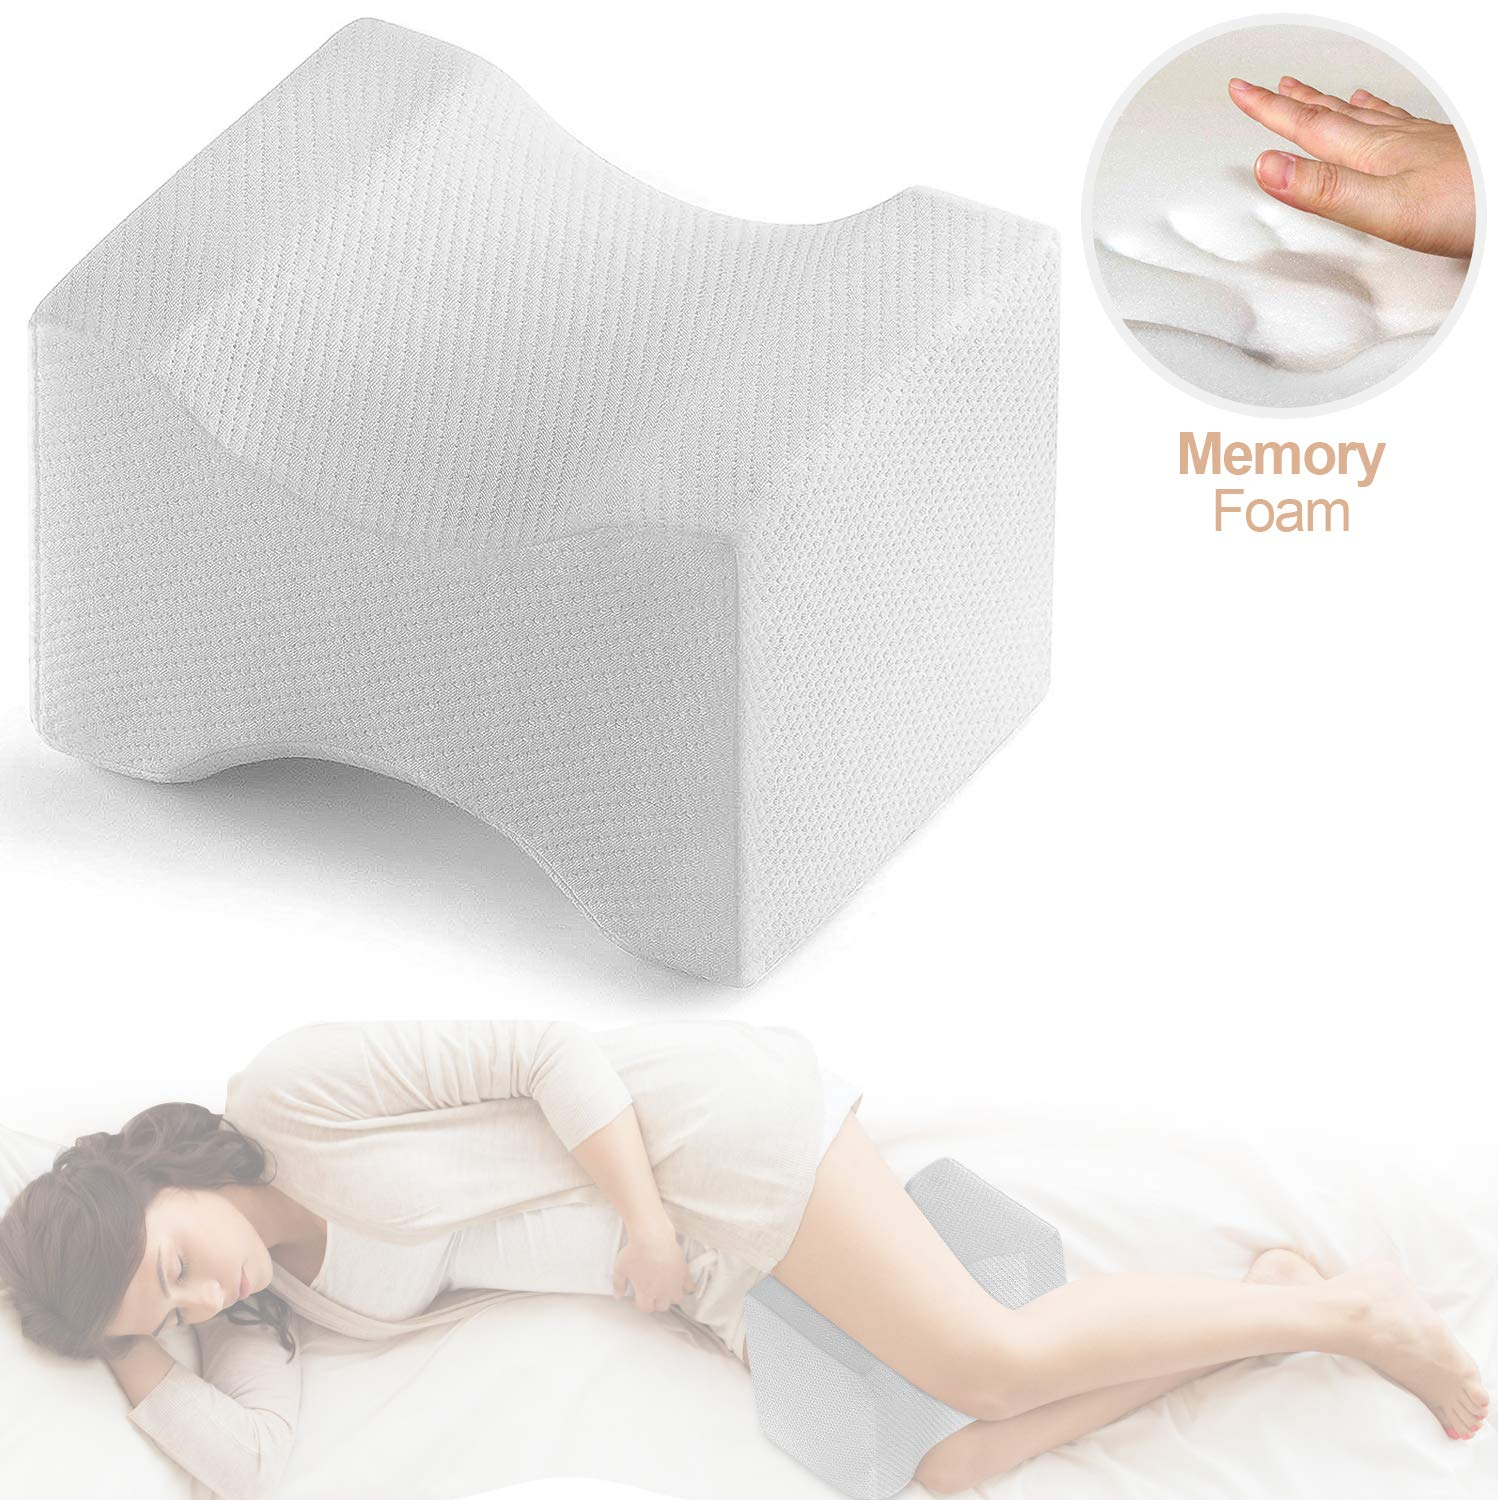 Trademark Supplies Knee Pillow Leg Positioner - Made from Memory Foam - Removable and Washable Cover - Promotes Better Sleep, Improve Blood Circulation & Proper Posture Alignment (Standard)